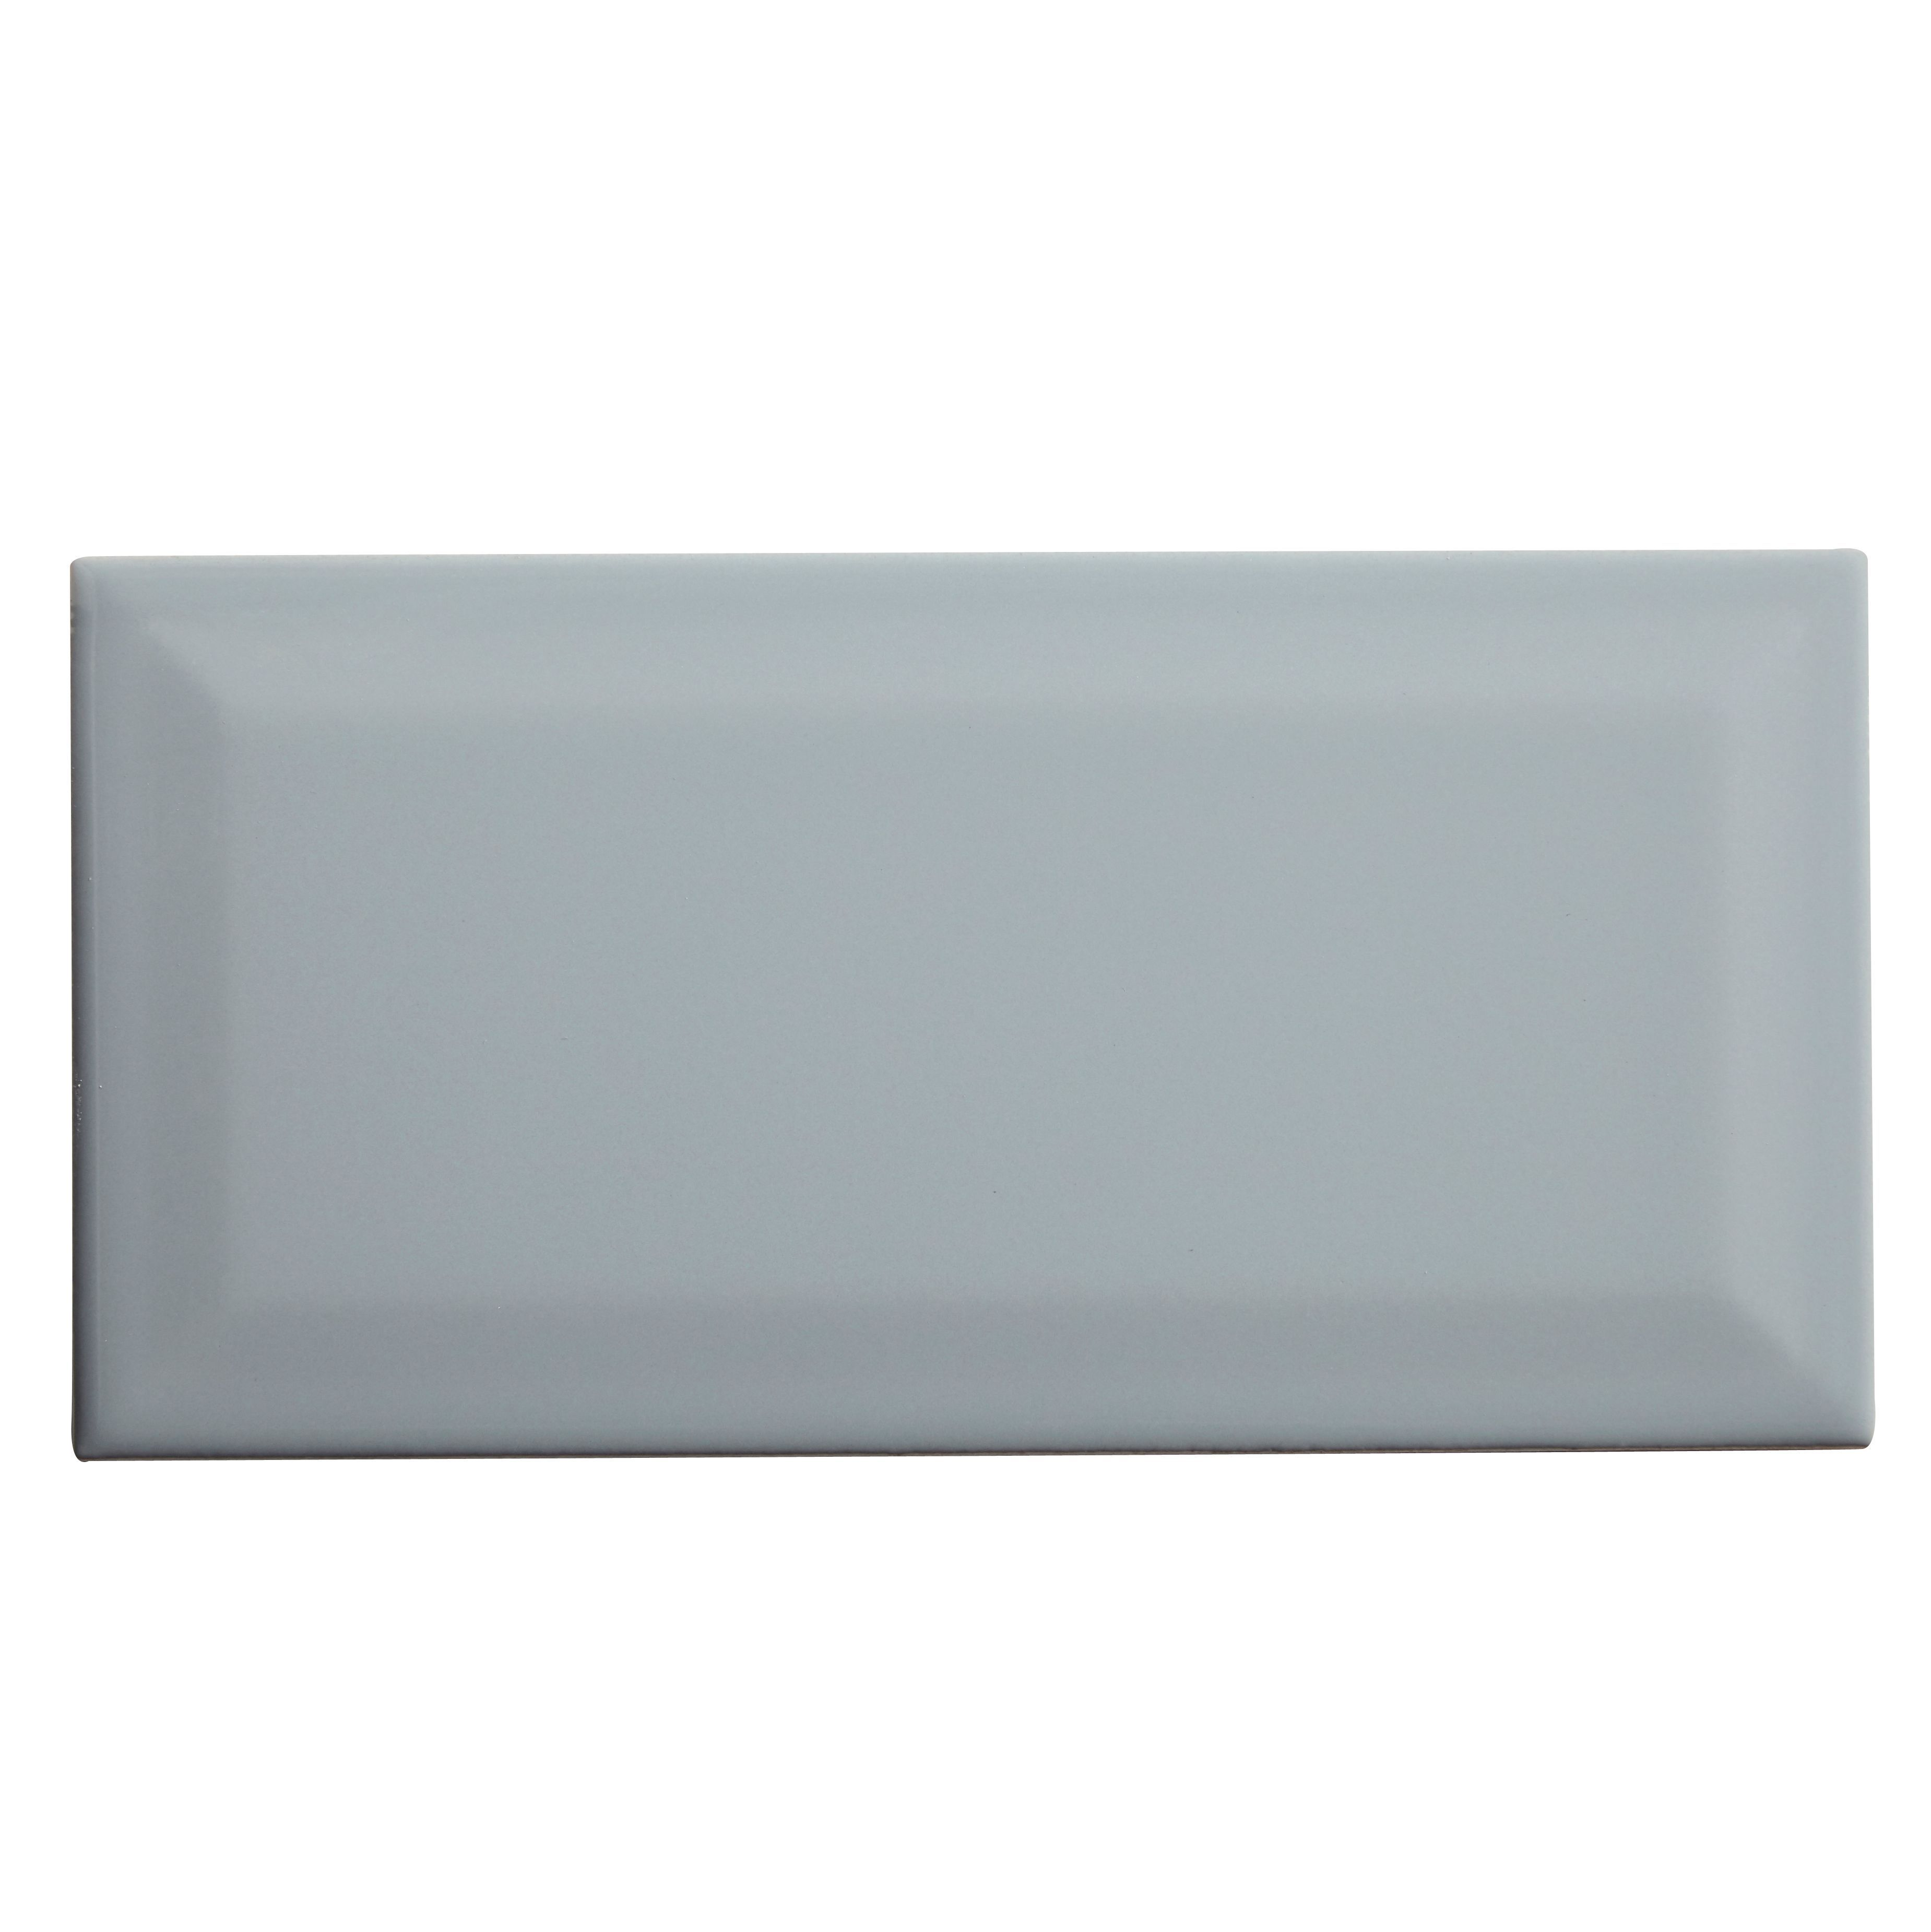 Trentie Grey Gloss Ceramic Wall Tile, Pack of 40, (L)200mm (W)100mm ...